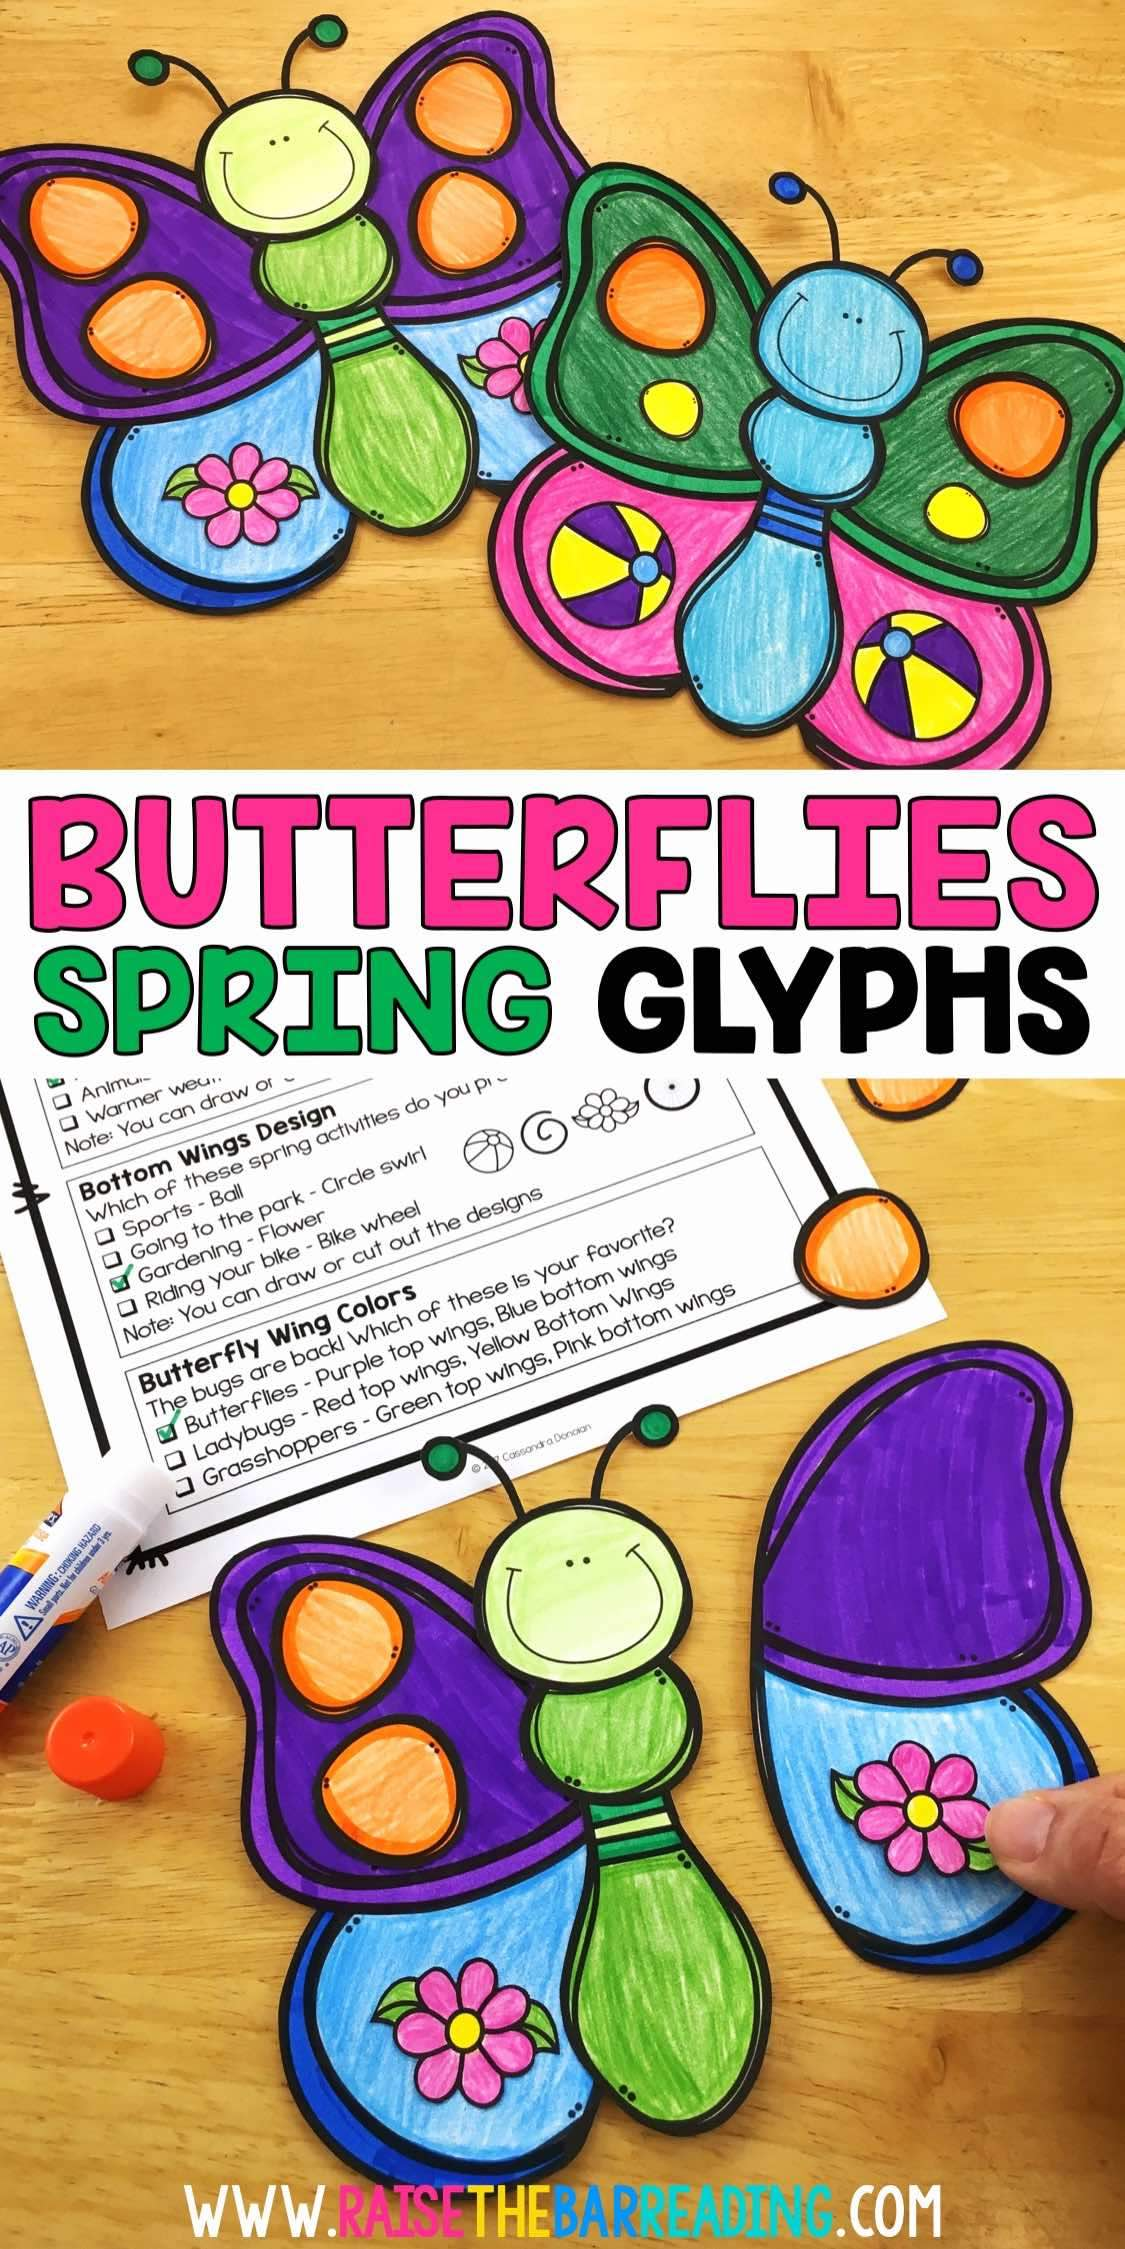 spring glyph activity for elementary students